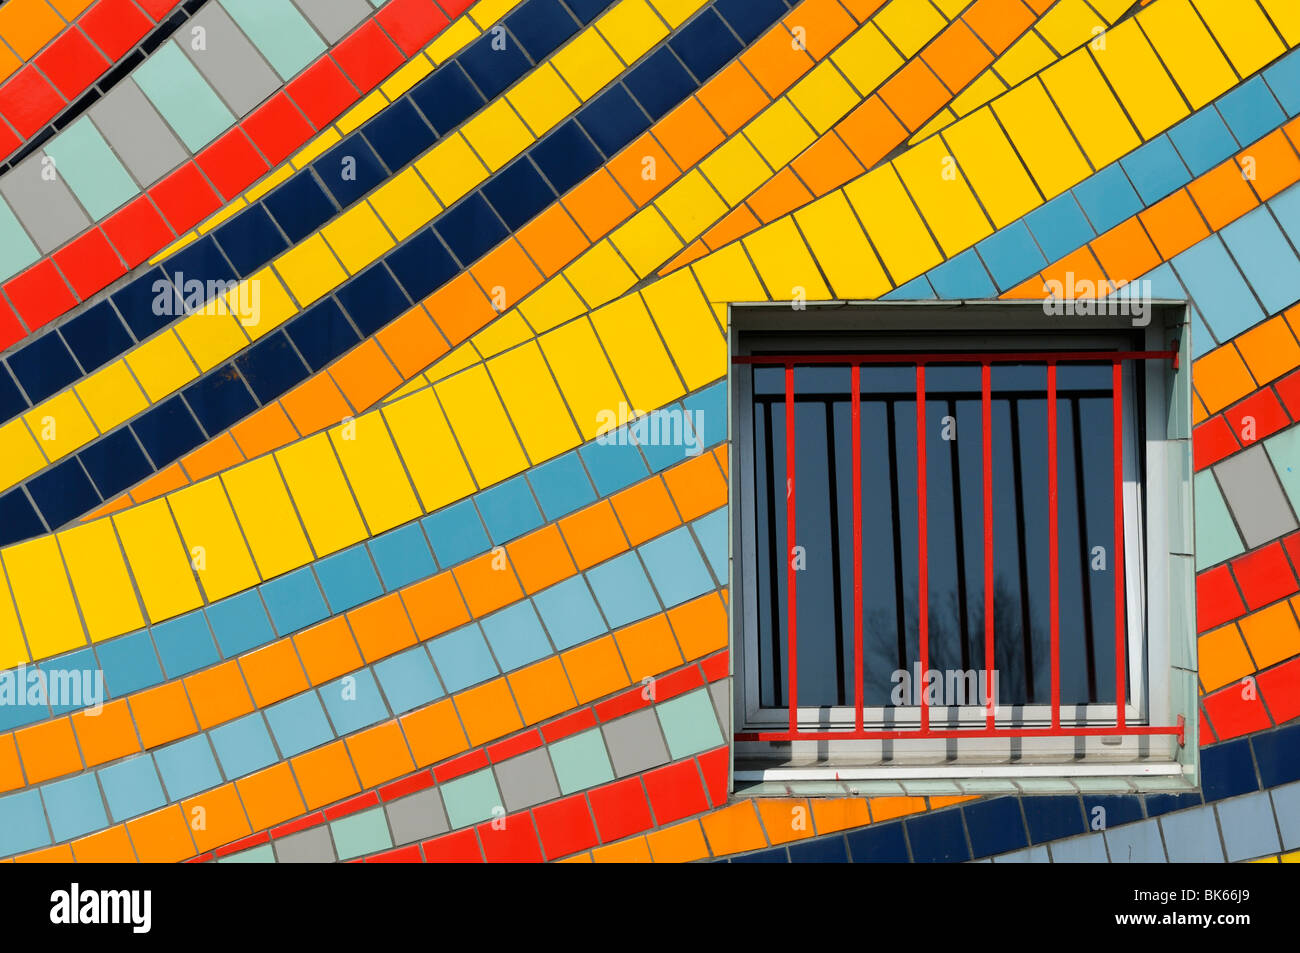 coloured tiles stockfotos coloured tiles bilder alamy. Black Bedroom Furniture Sets. Home Design Ideas